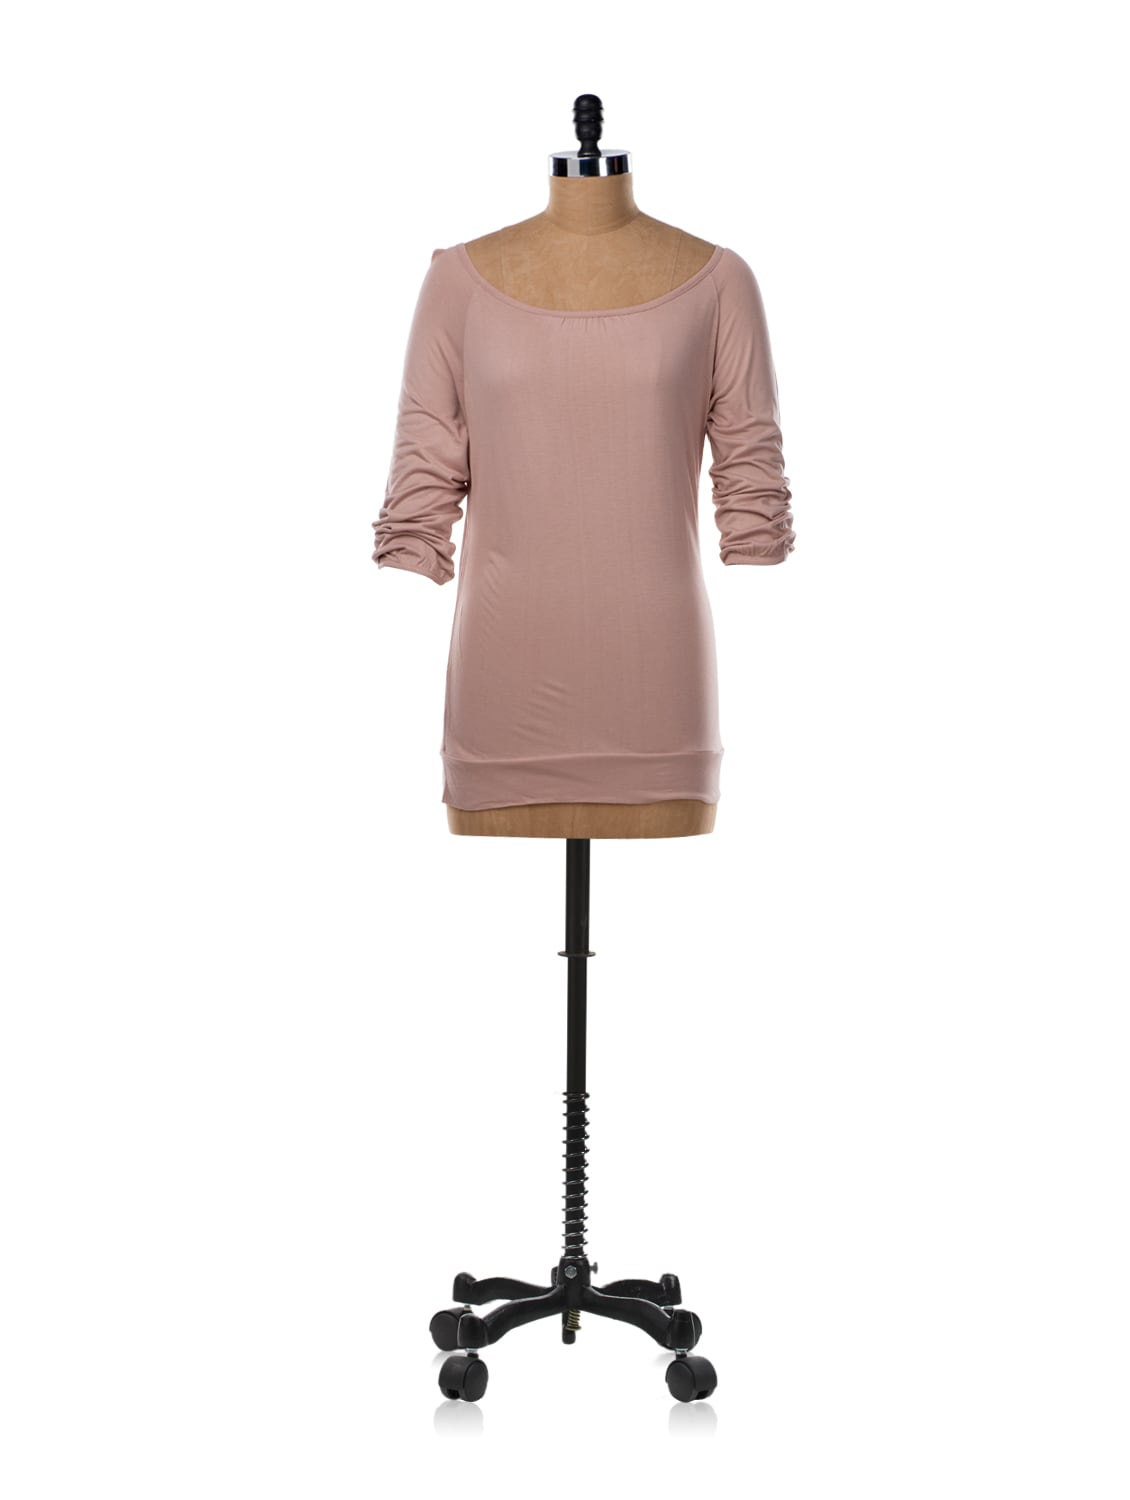 Nude Pink Wide Neck T-shirt - Van Heusen